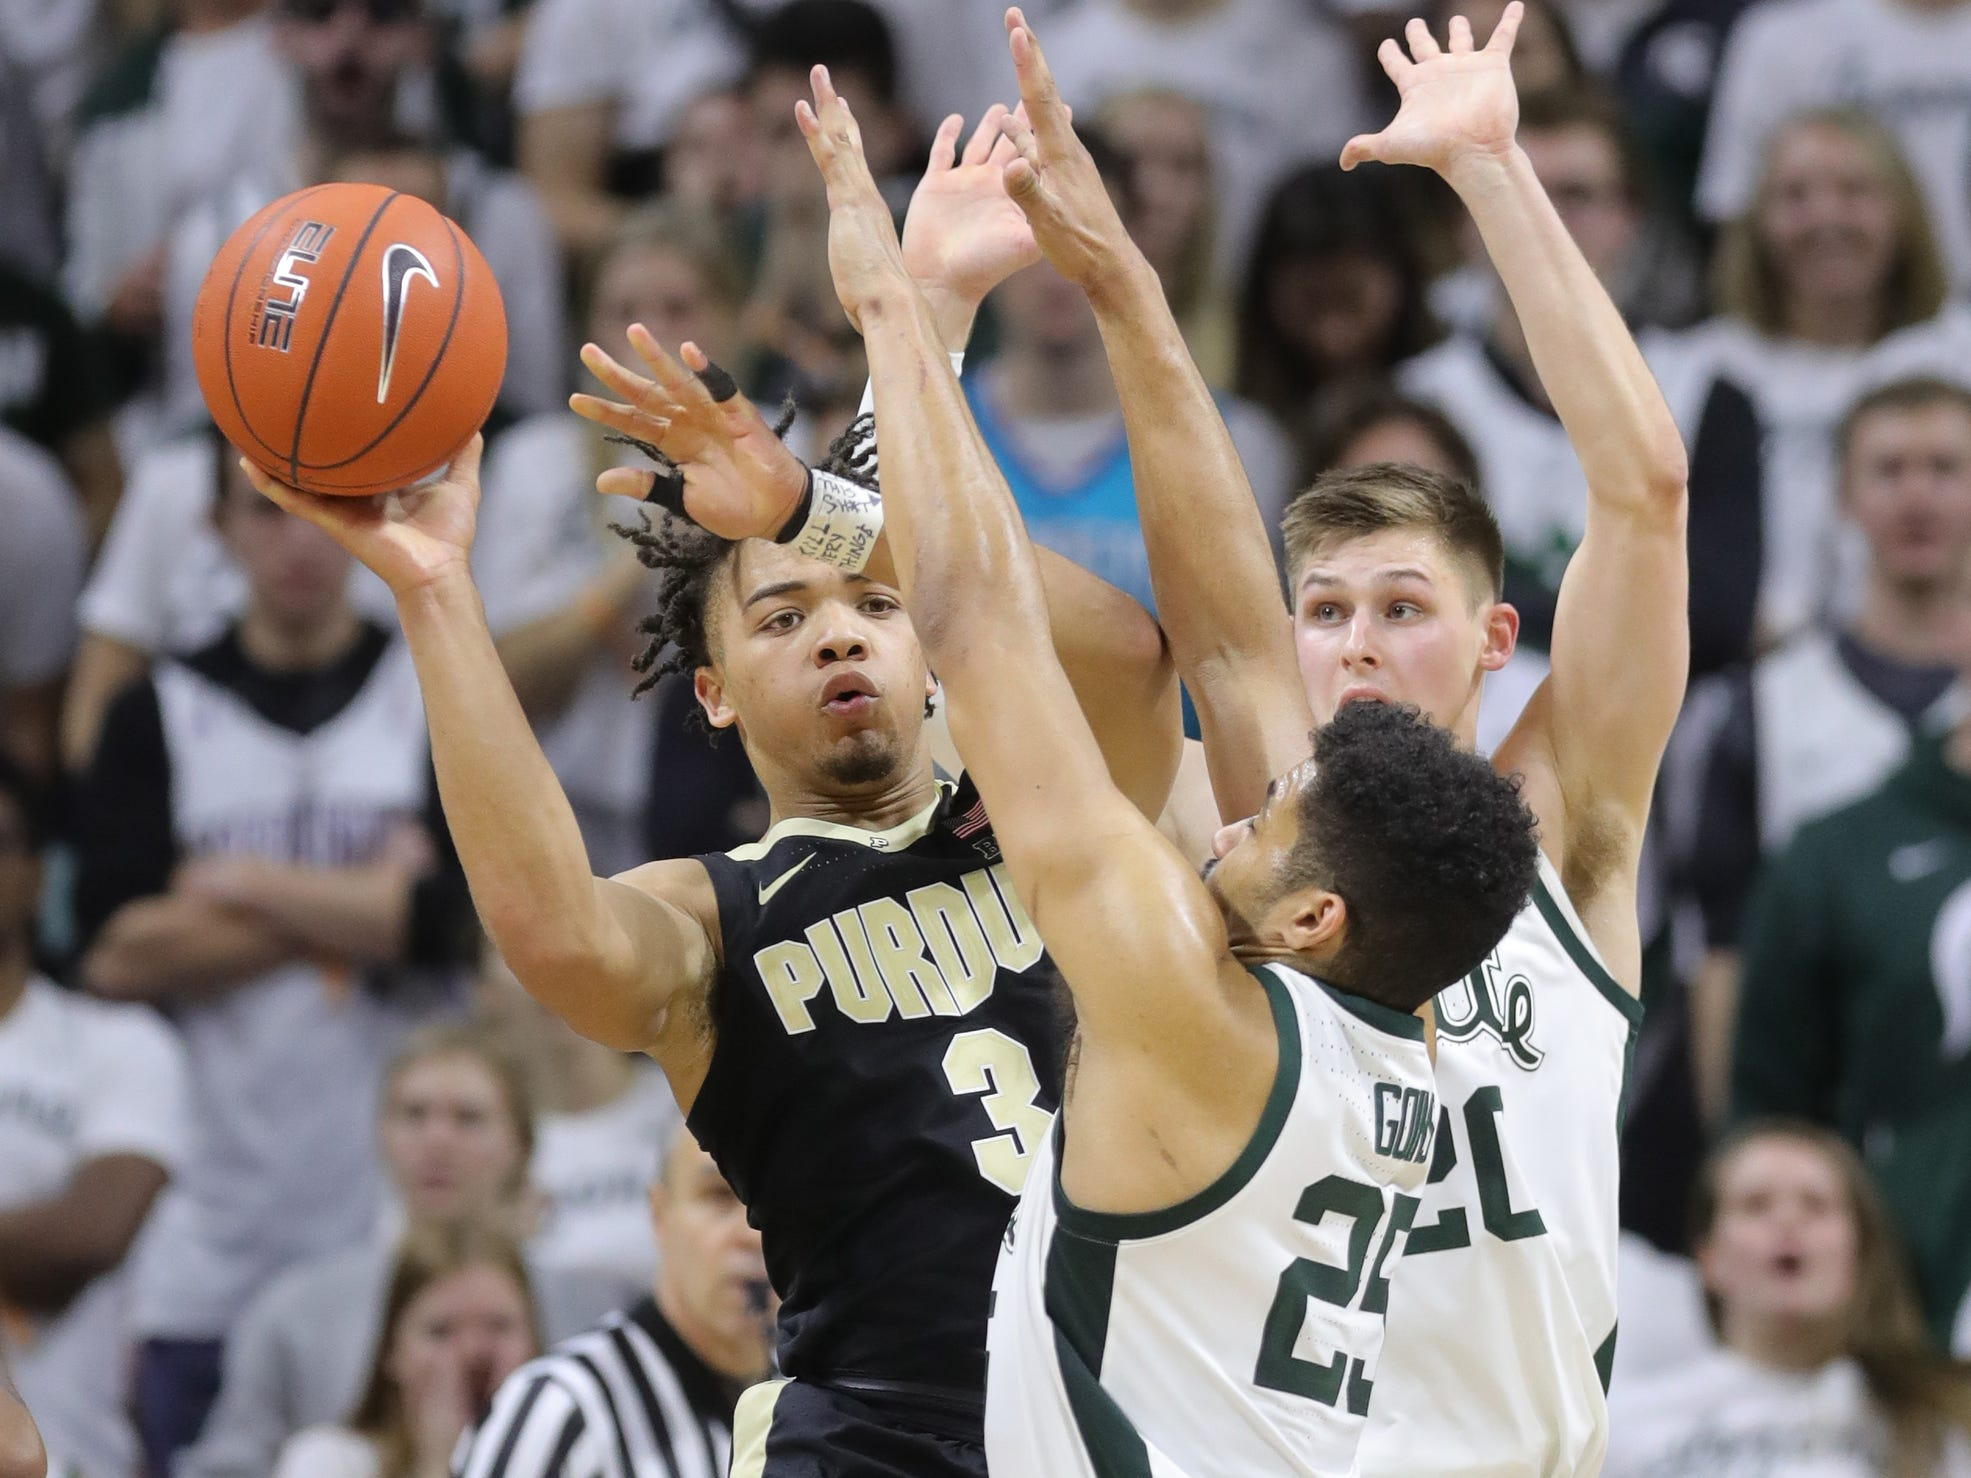 Michigan State's Matt McQuaid (20) and Kenny Goins (25) defend against Purdue guard Carsen Edwards during second half action Tuesday, Jan. 8, 2019 at the Breslin Center in East Lansing, Mich.